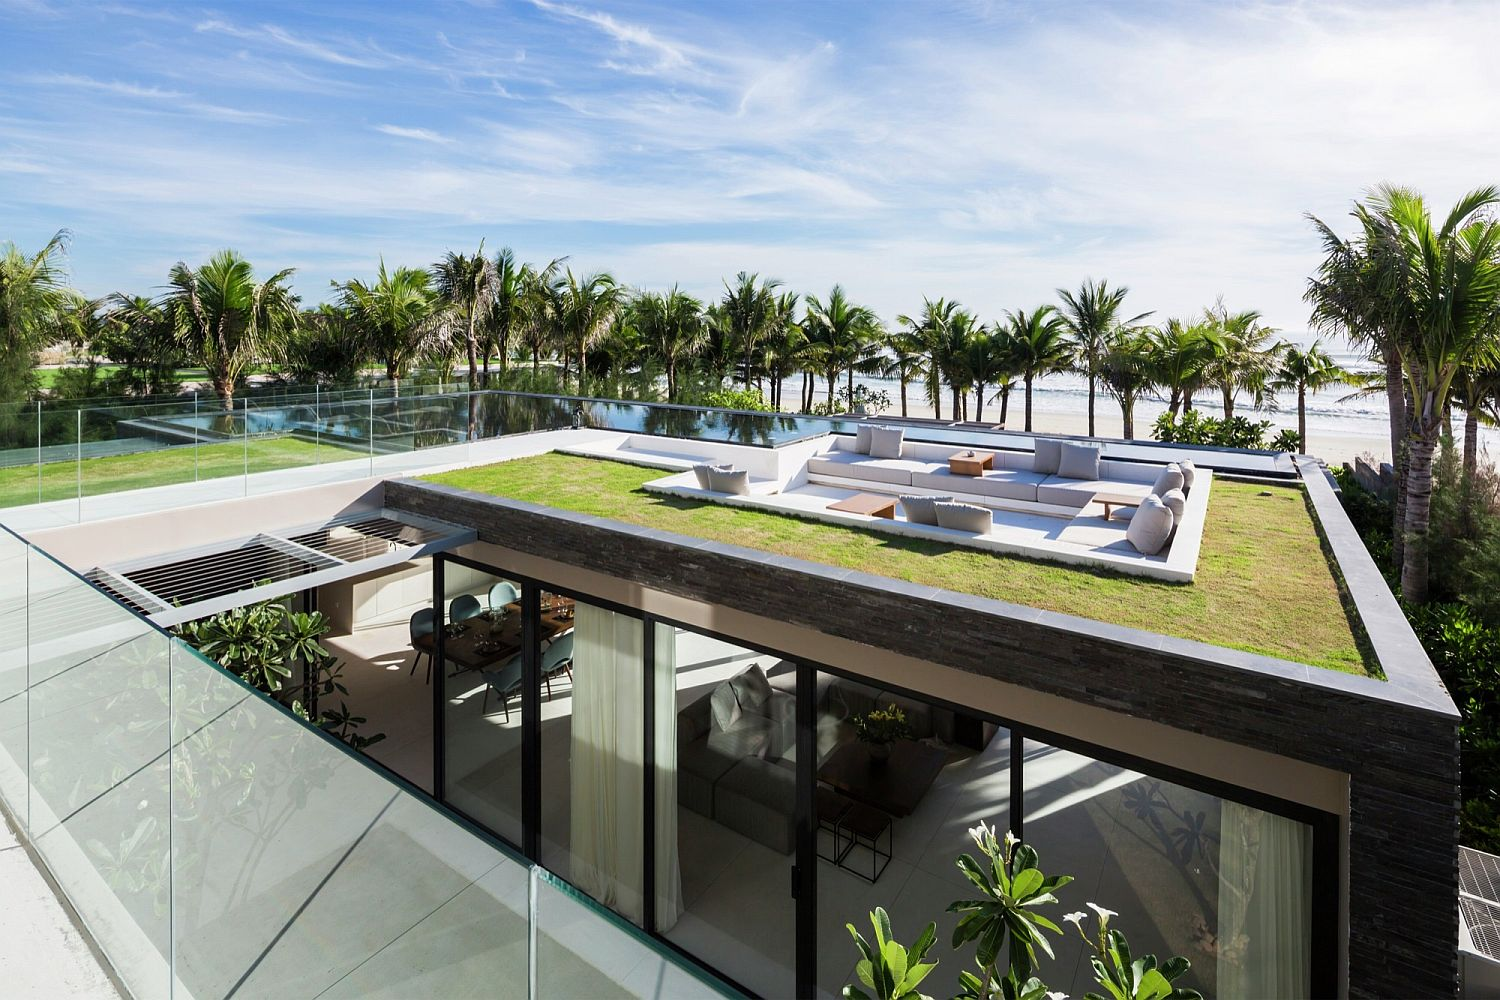 Stunning contemporary villas with a stunning view of the beach